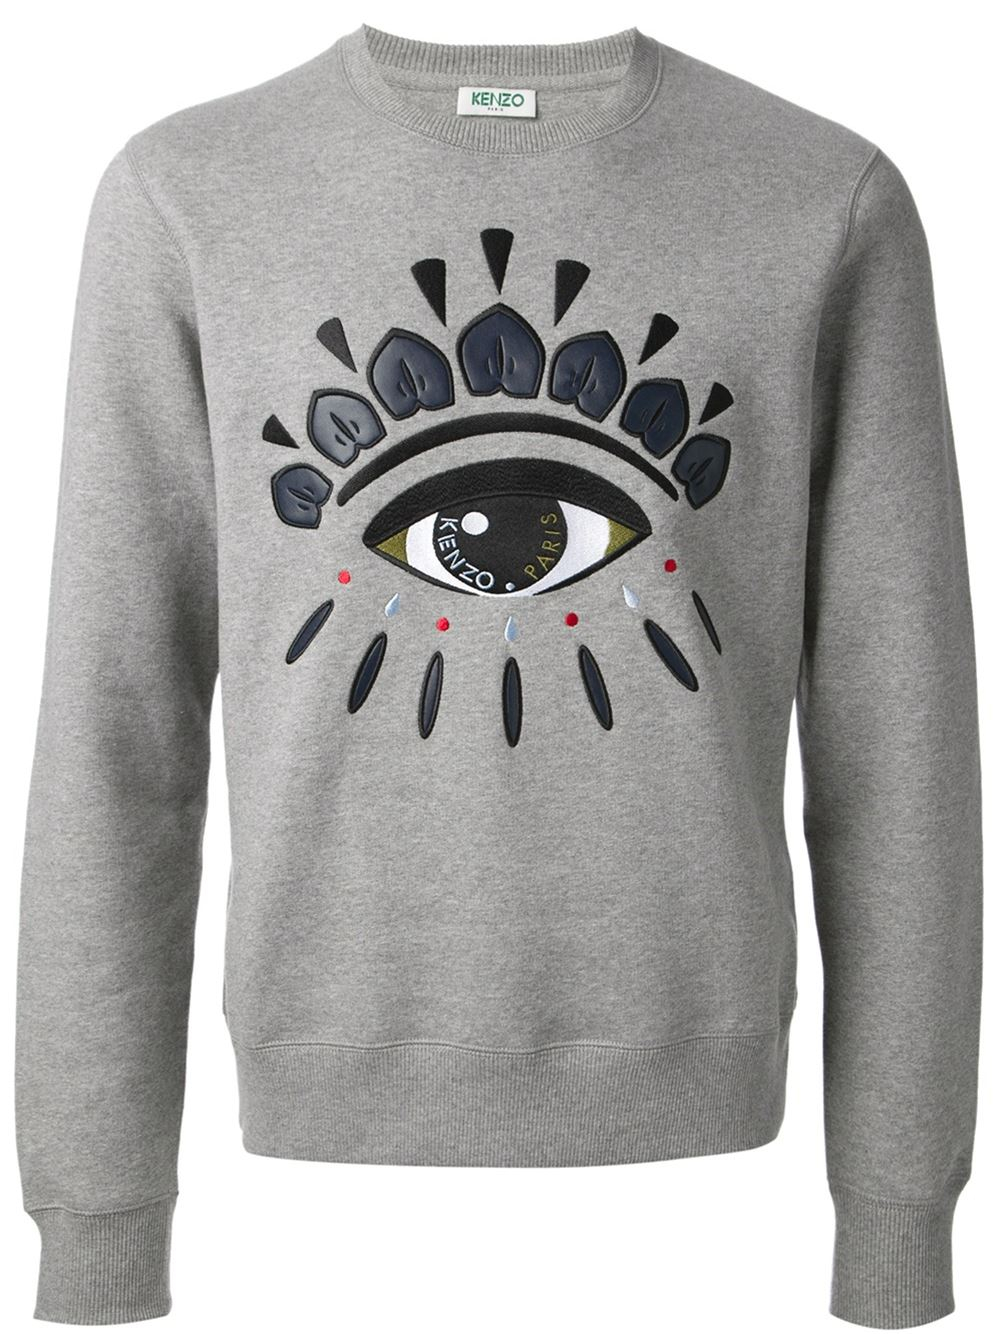 77c59b616 KENZO Embroidered Eye Sweatshirt in Gray for Men - Lyst